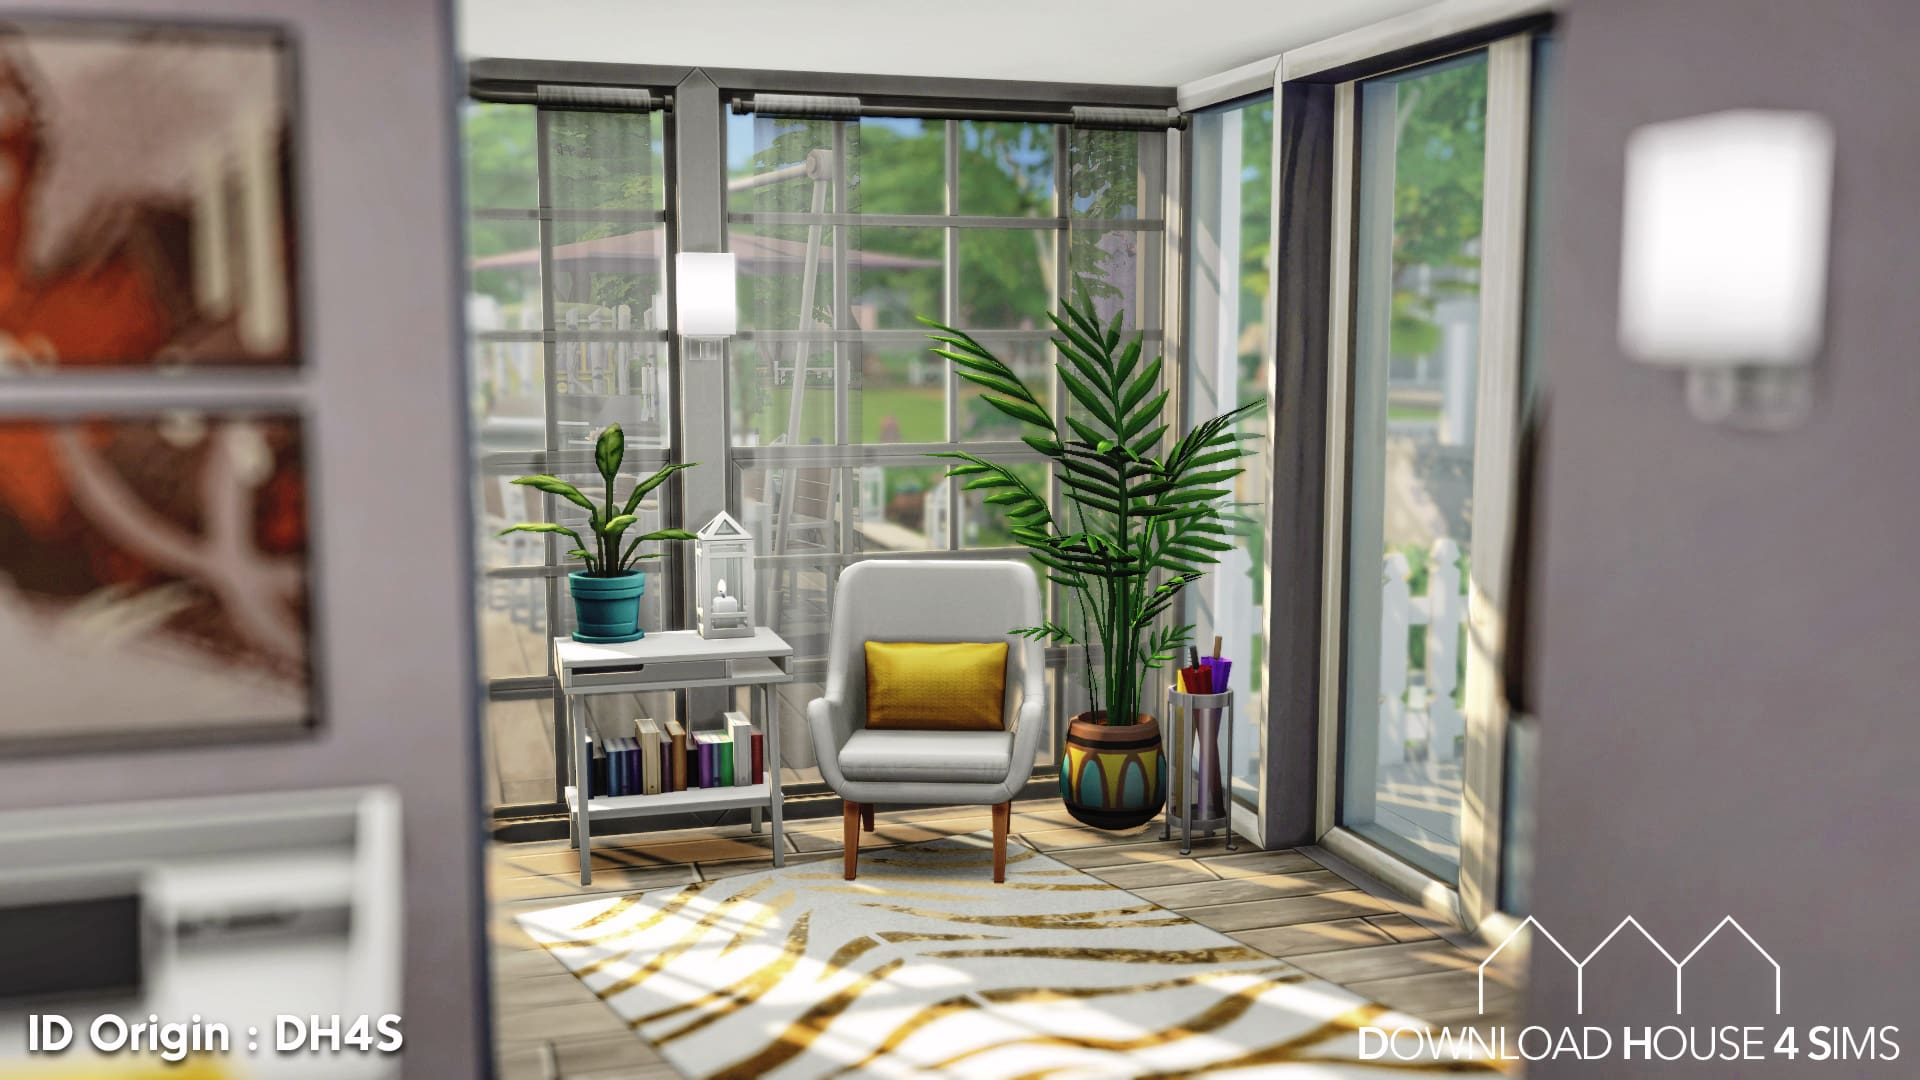 Family-Cottage-Sims-4-DH4S-download-house-4-sims-18